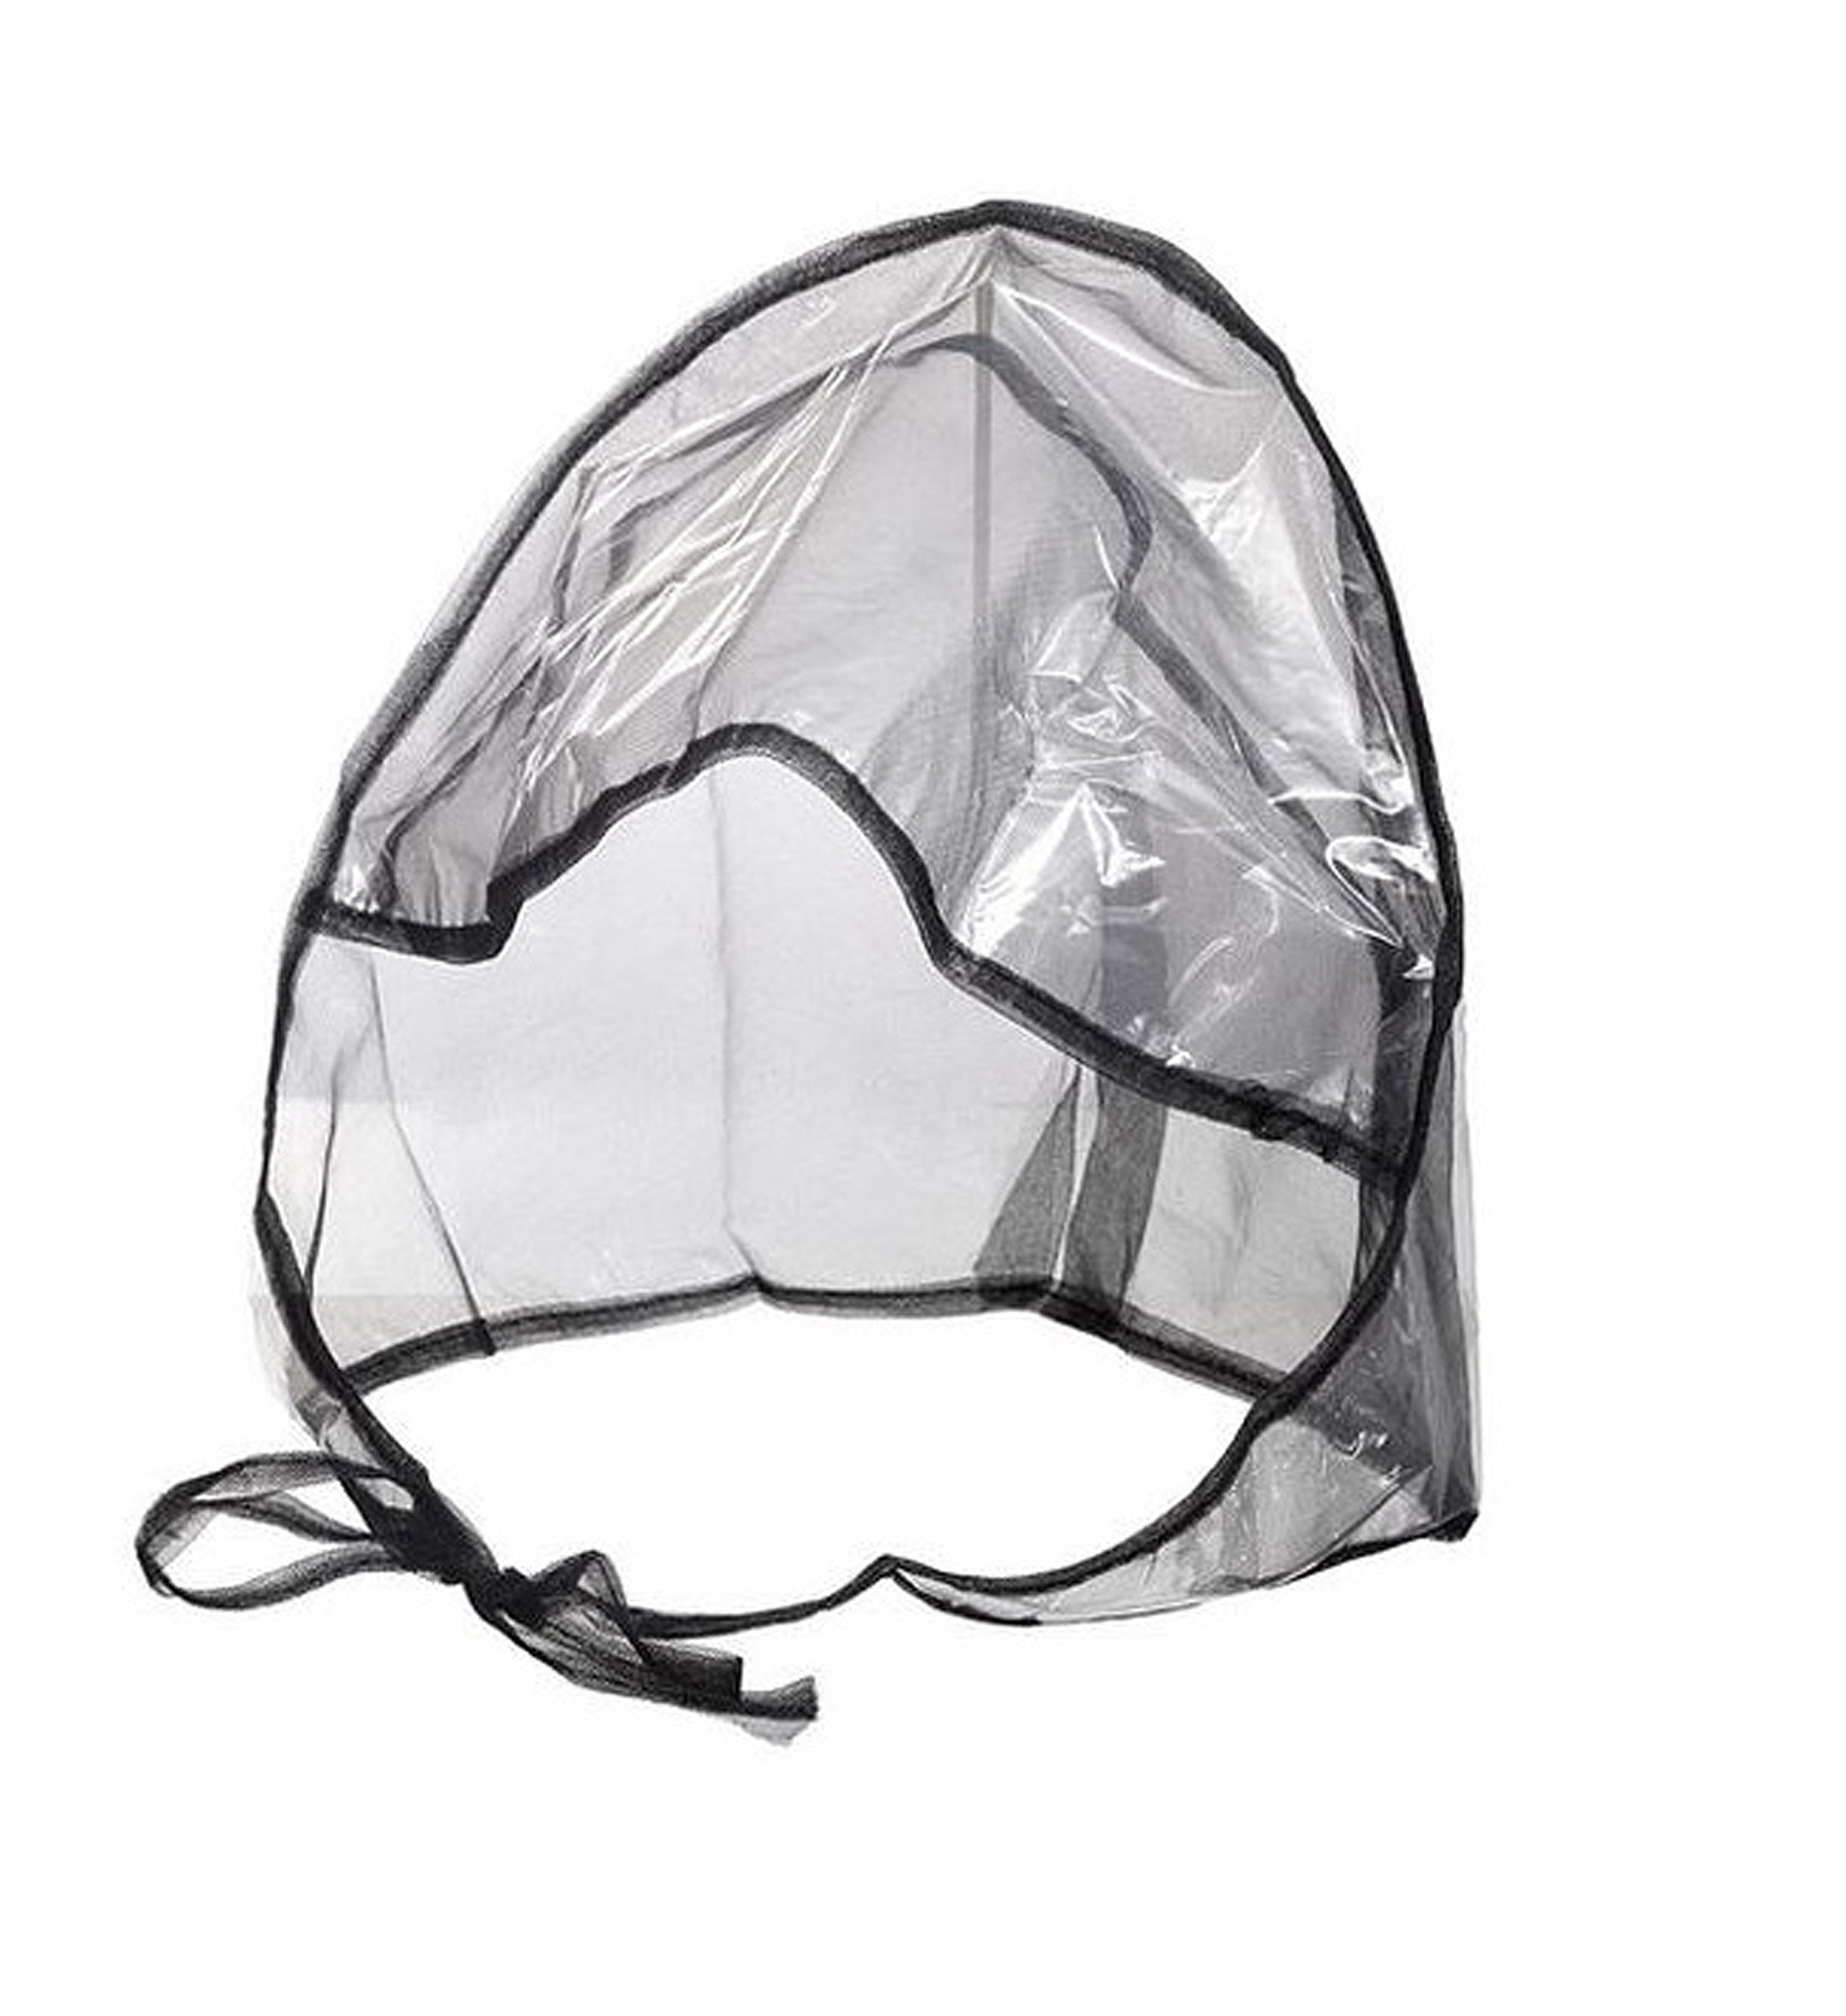 FIT RITE Rain Bonnet with Full Cut Visor & Netting – One Size Fits All (Black) Set of 12